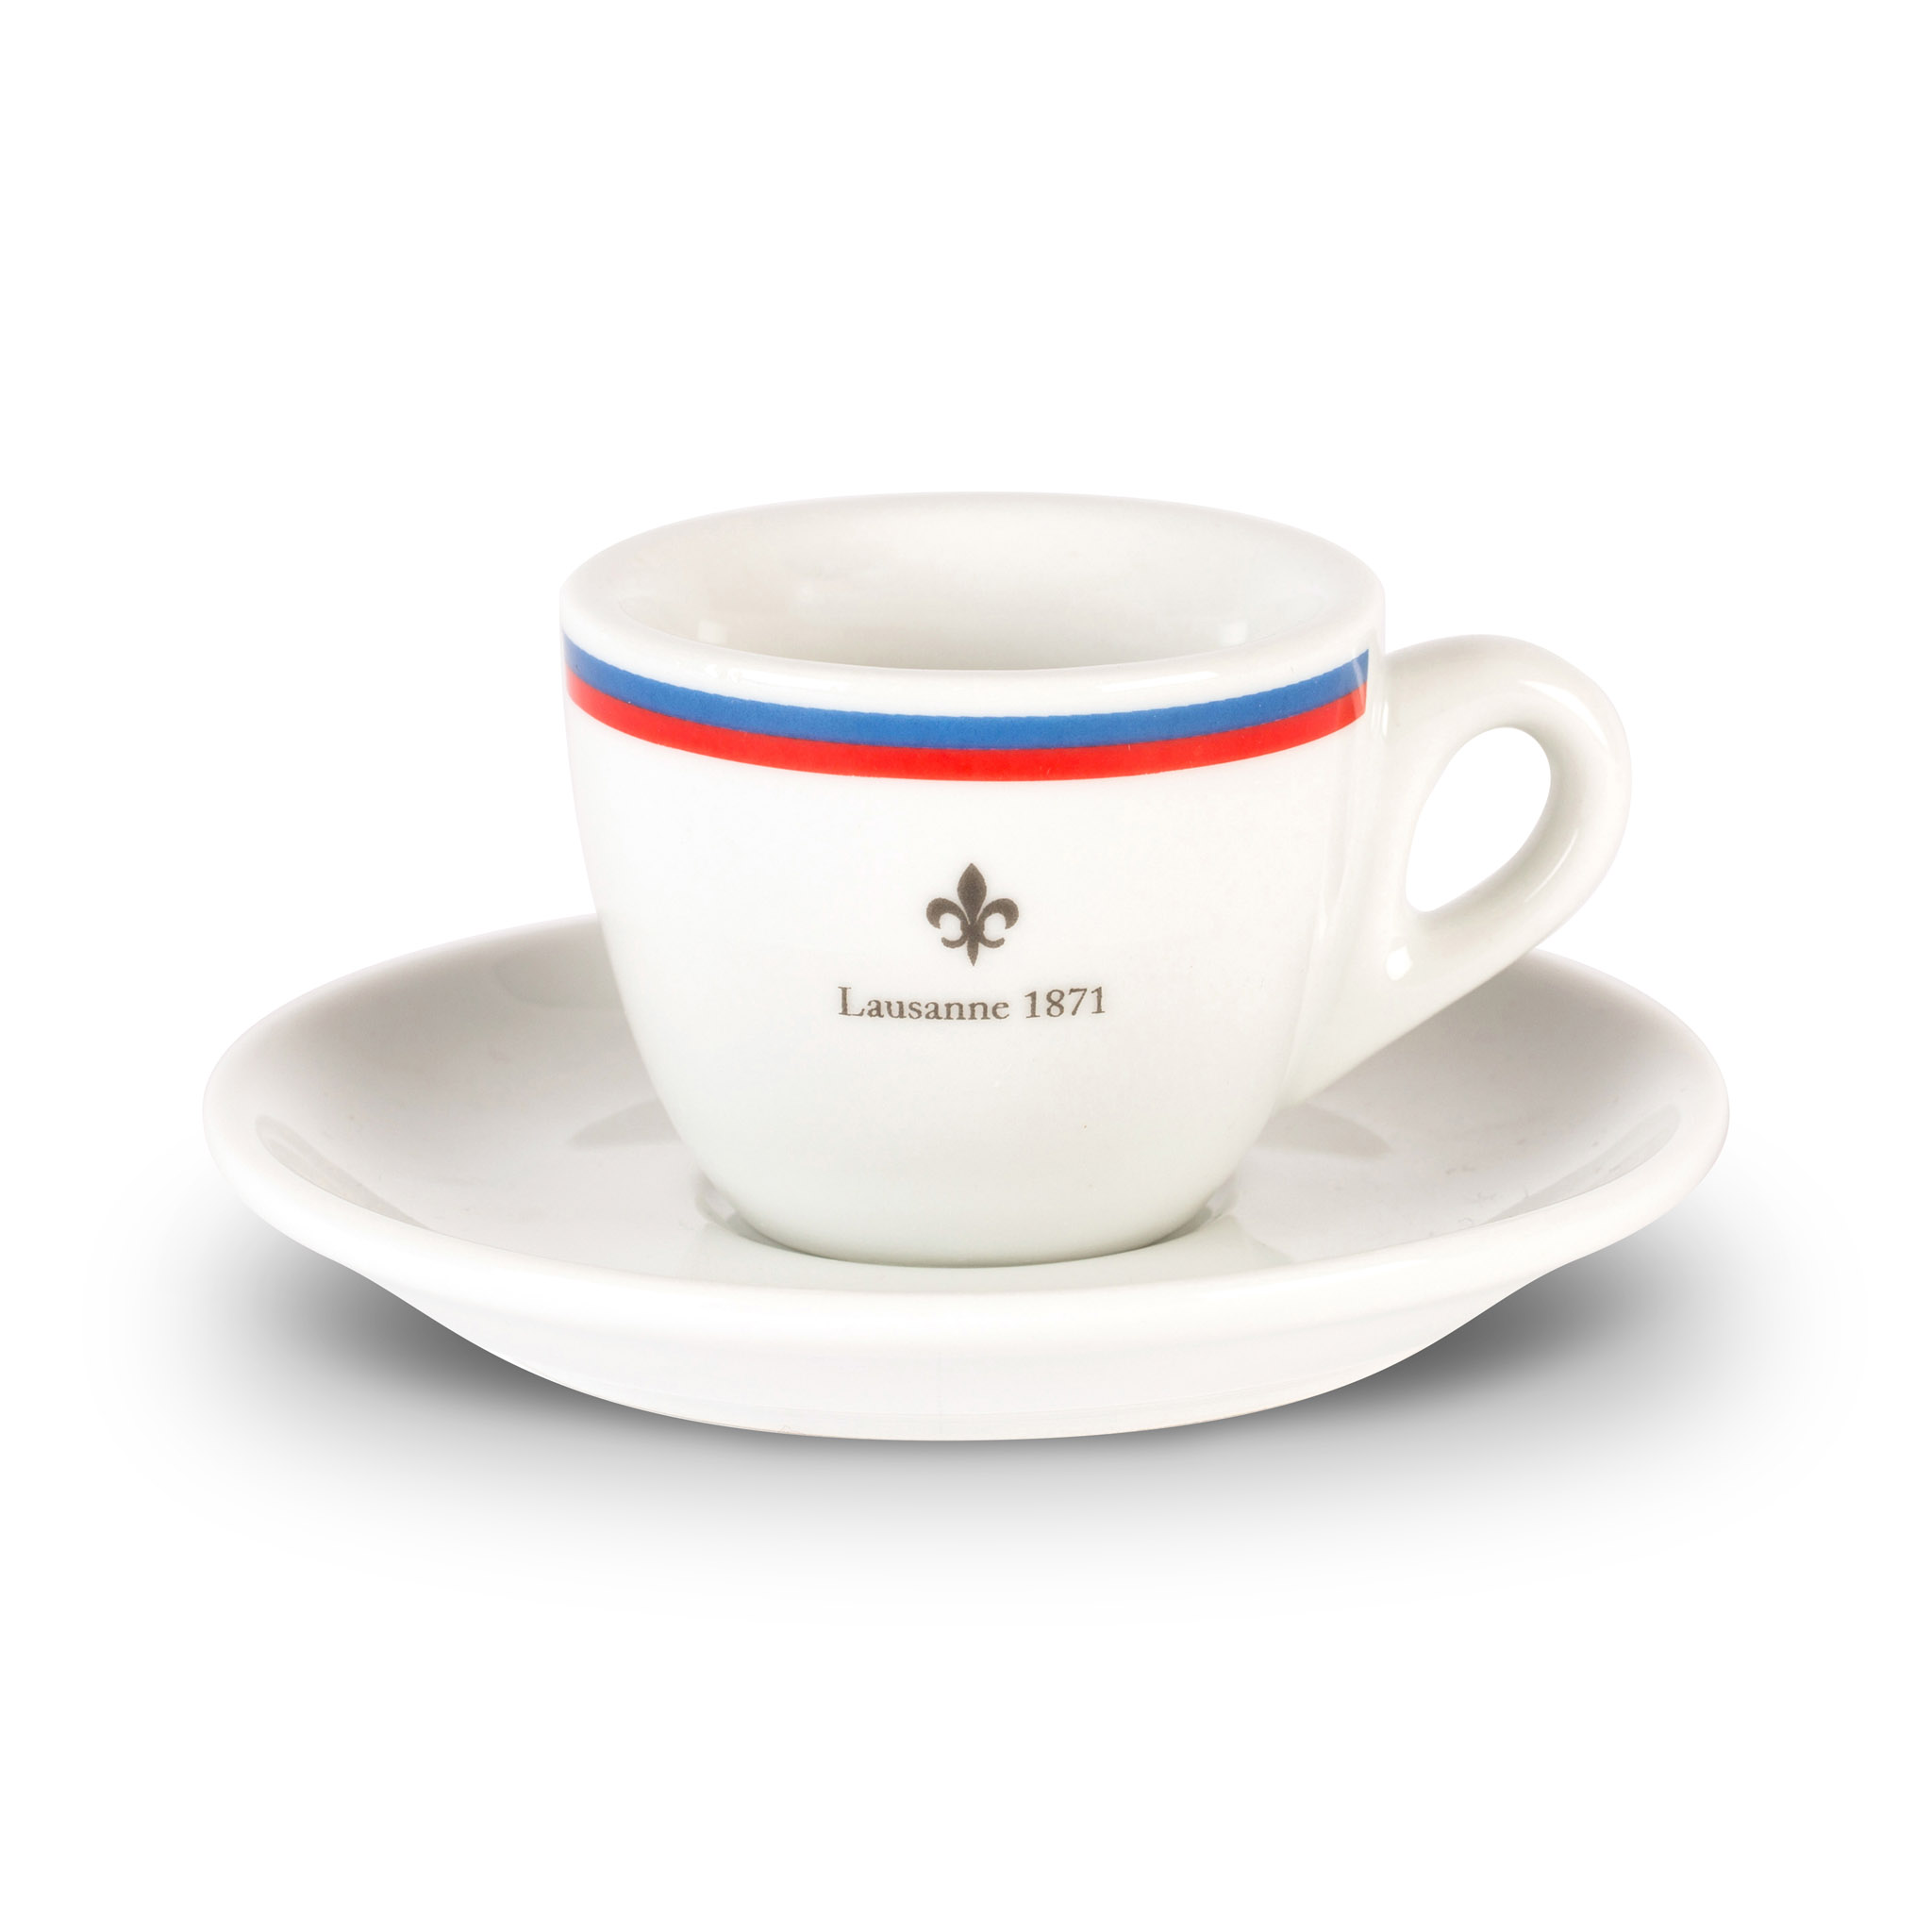 Lausanne espresso cup and saucer